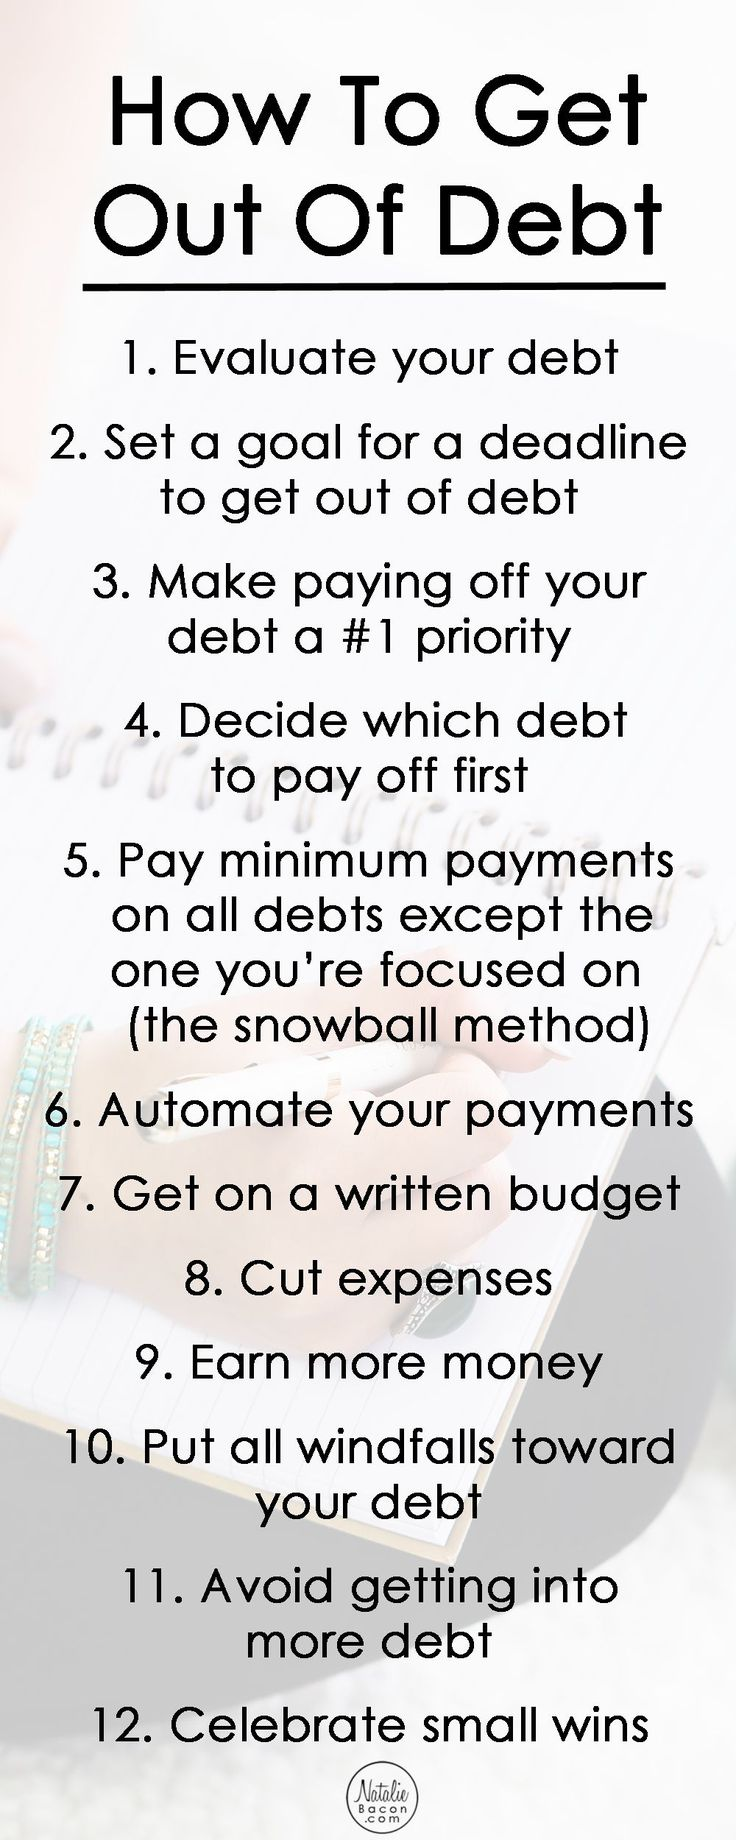 How to get out of debt - a 12 step guide | Natalie Bacon